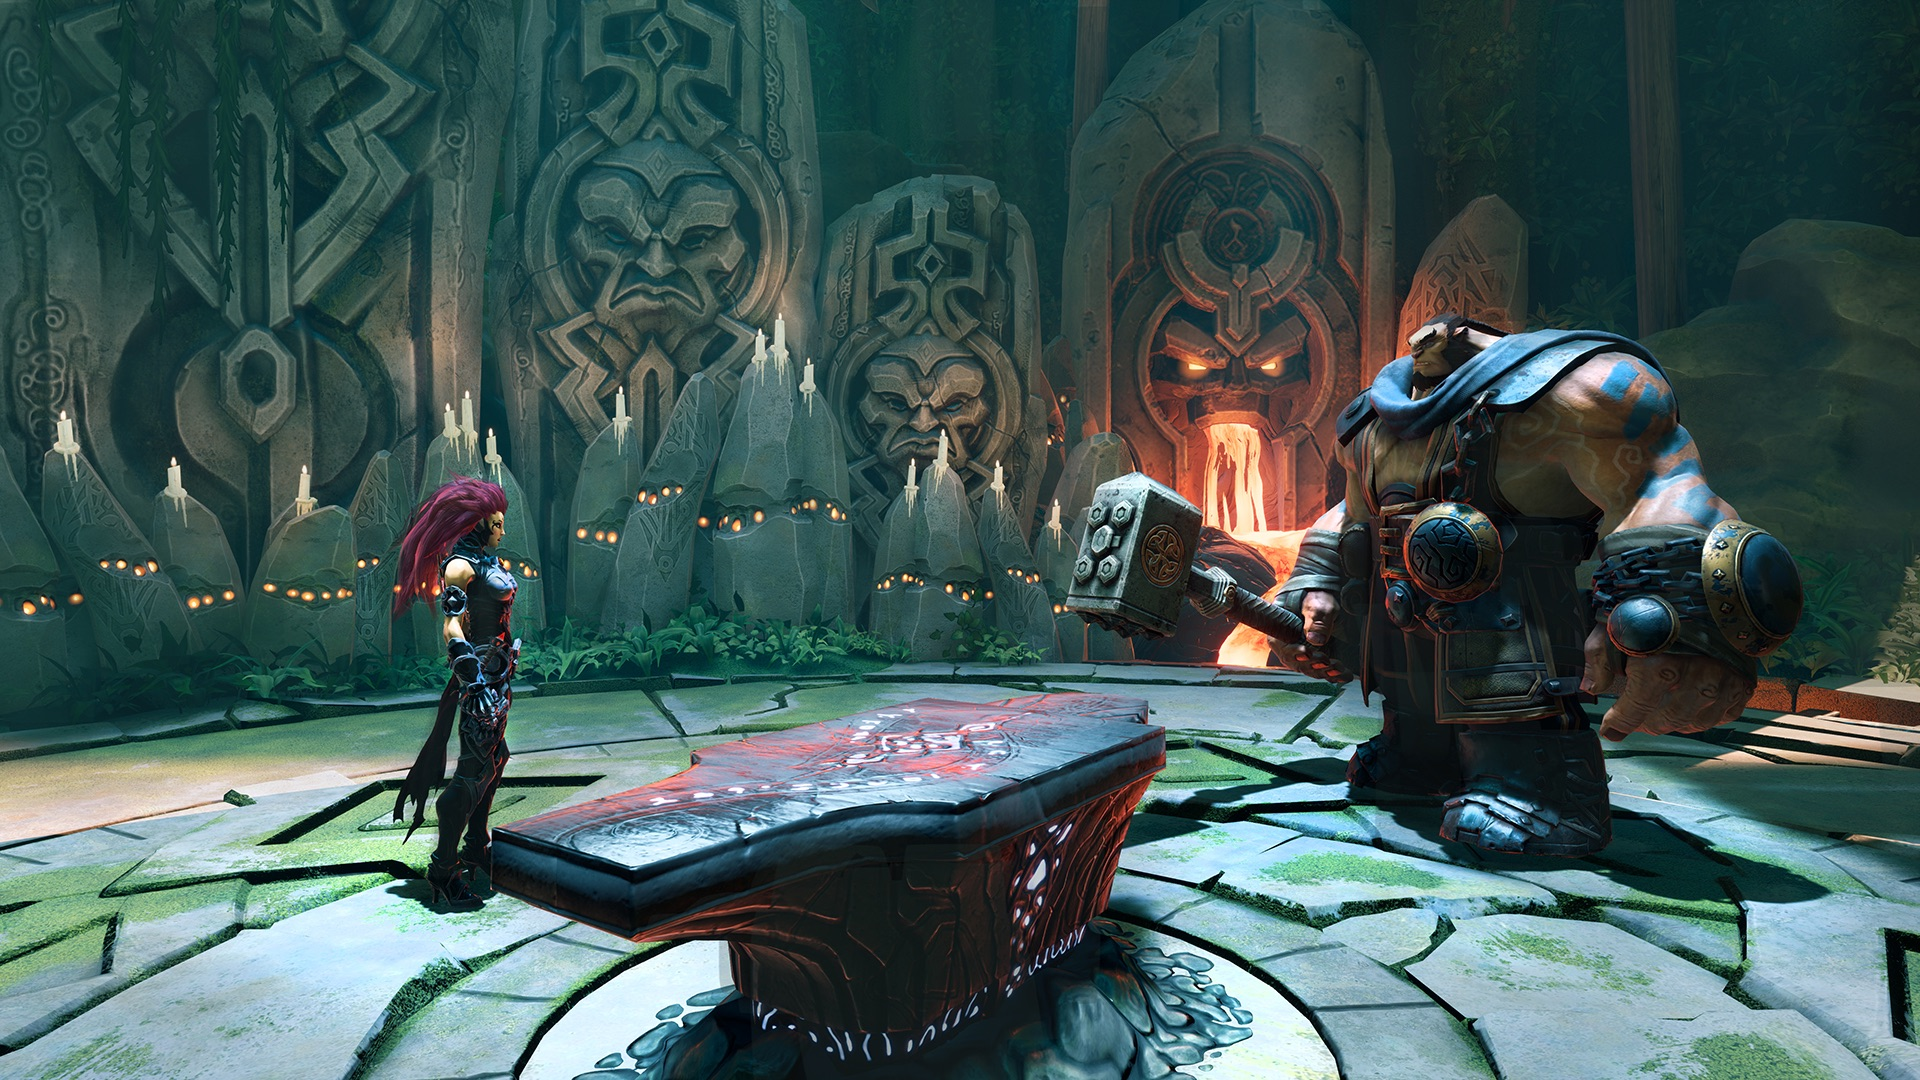 Screenshot From Darksiders III Featuring Fury At Ulthane's Forge